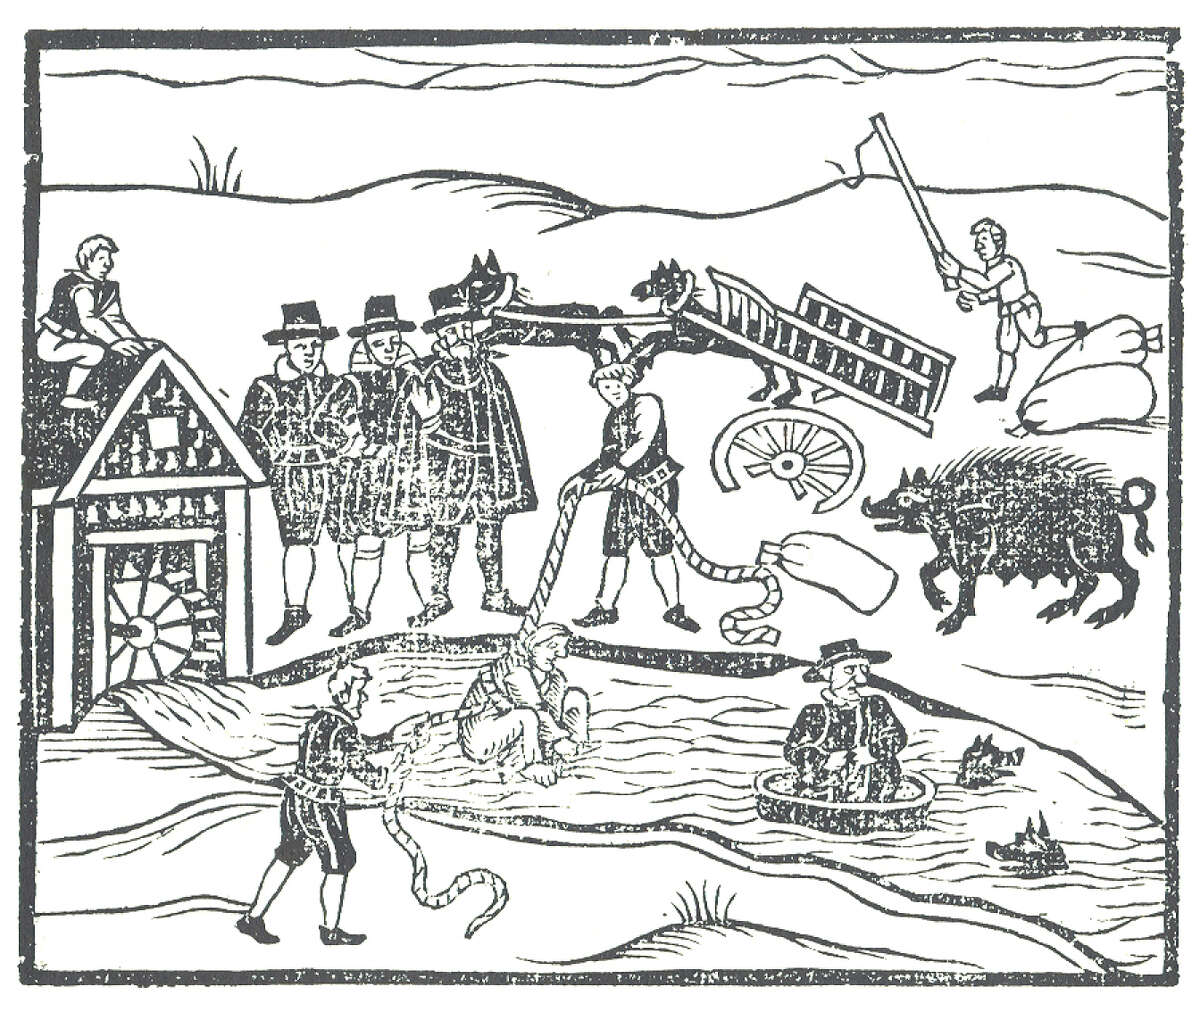 """Woodcut illustration of """"Witches Apprehended"""" showing the water test accused witches would undergo. Stamford has its own history of witch trials."""